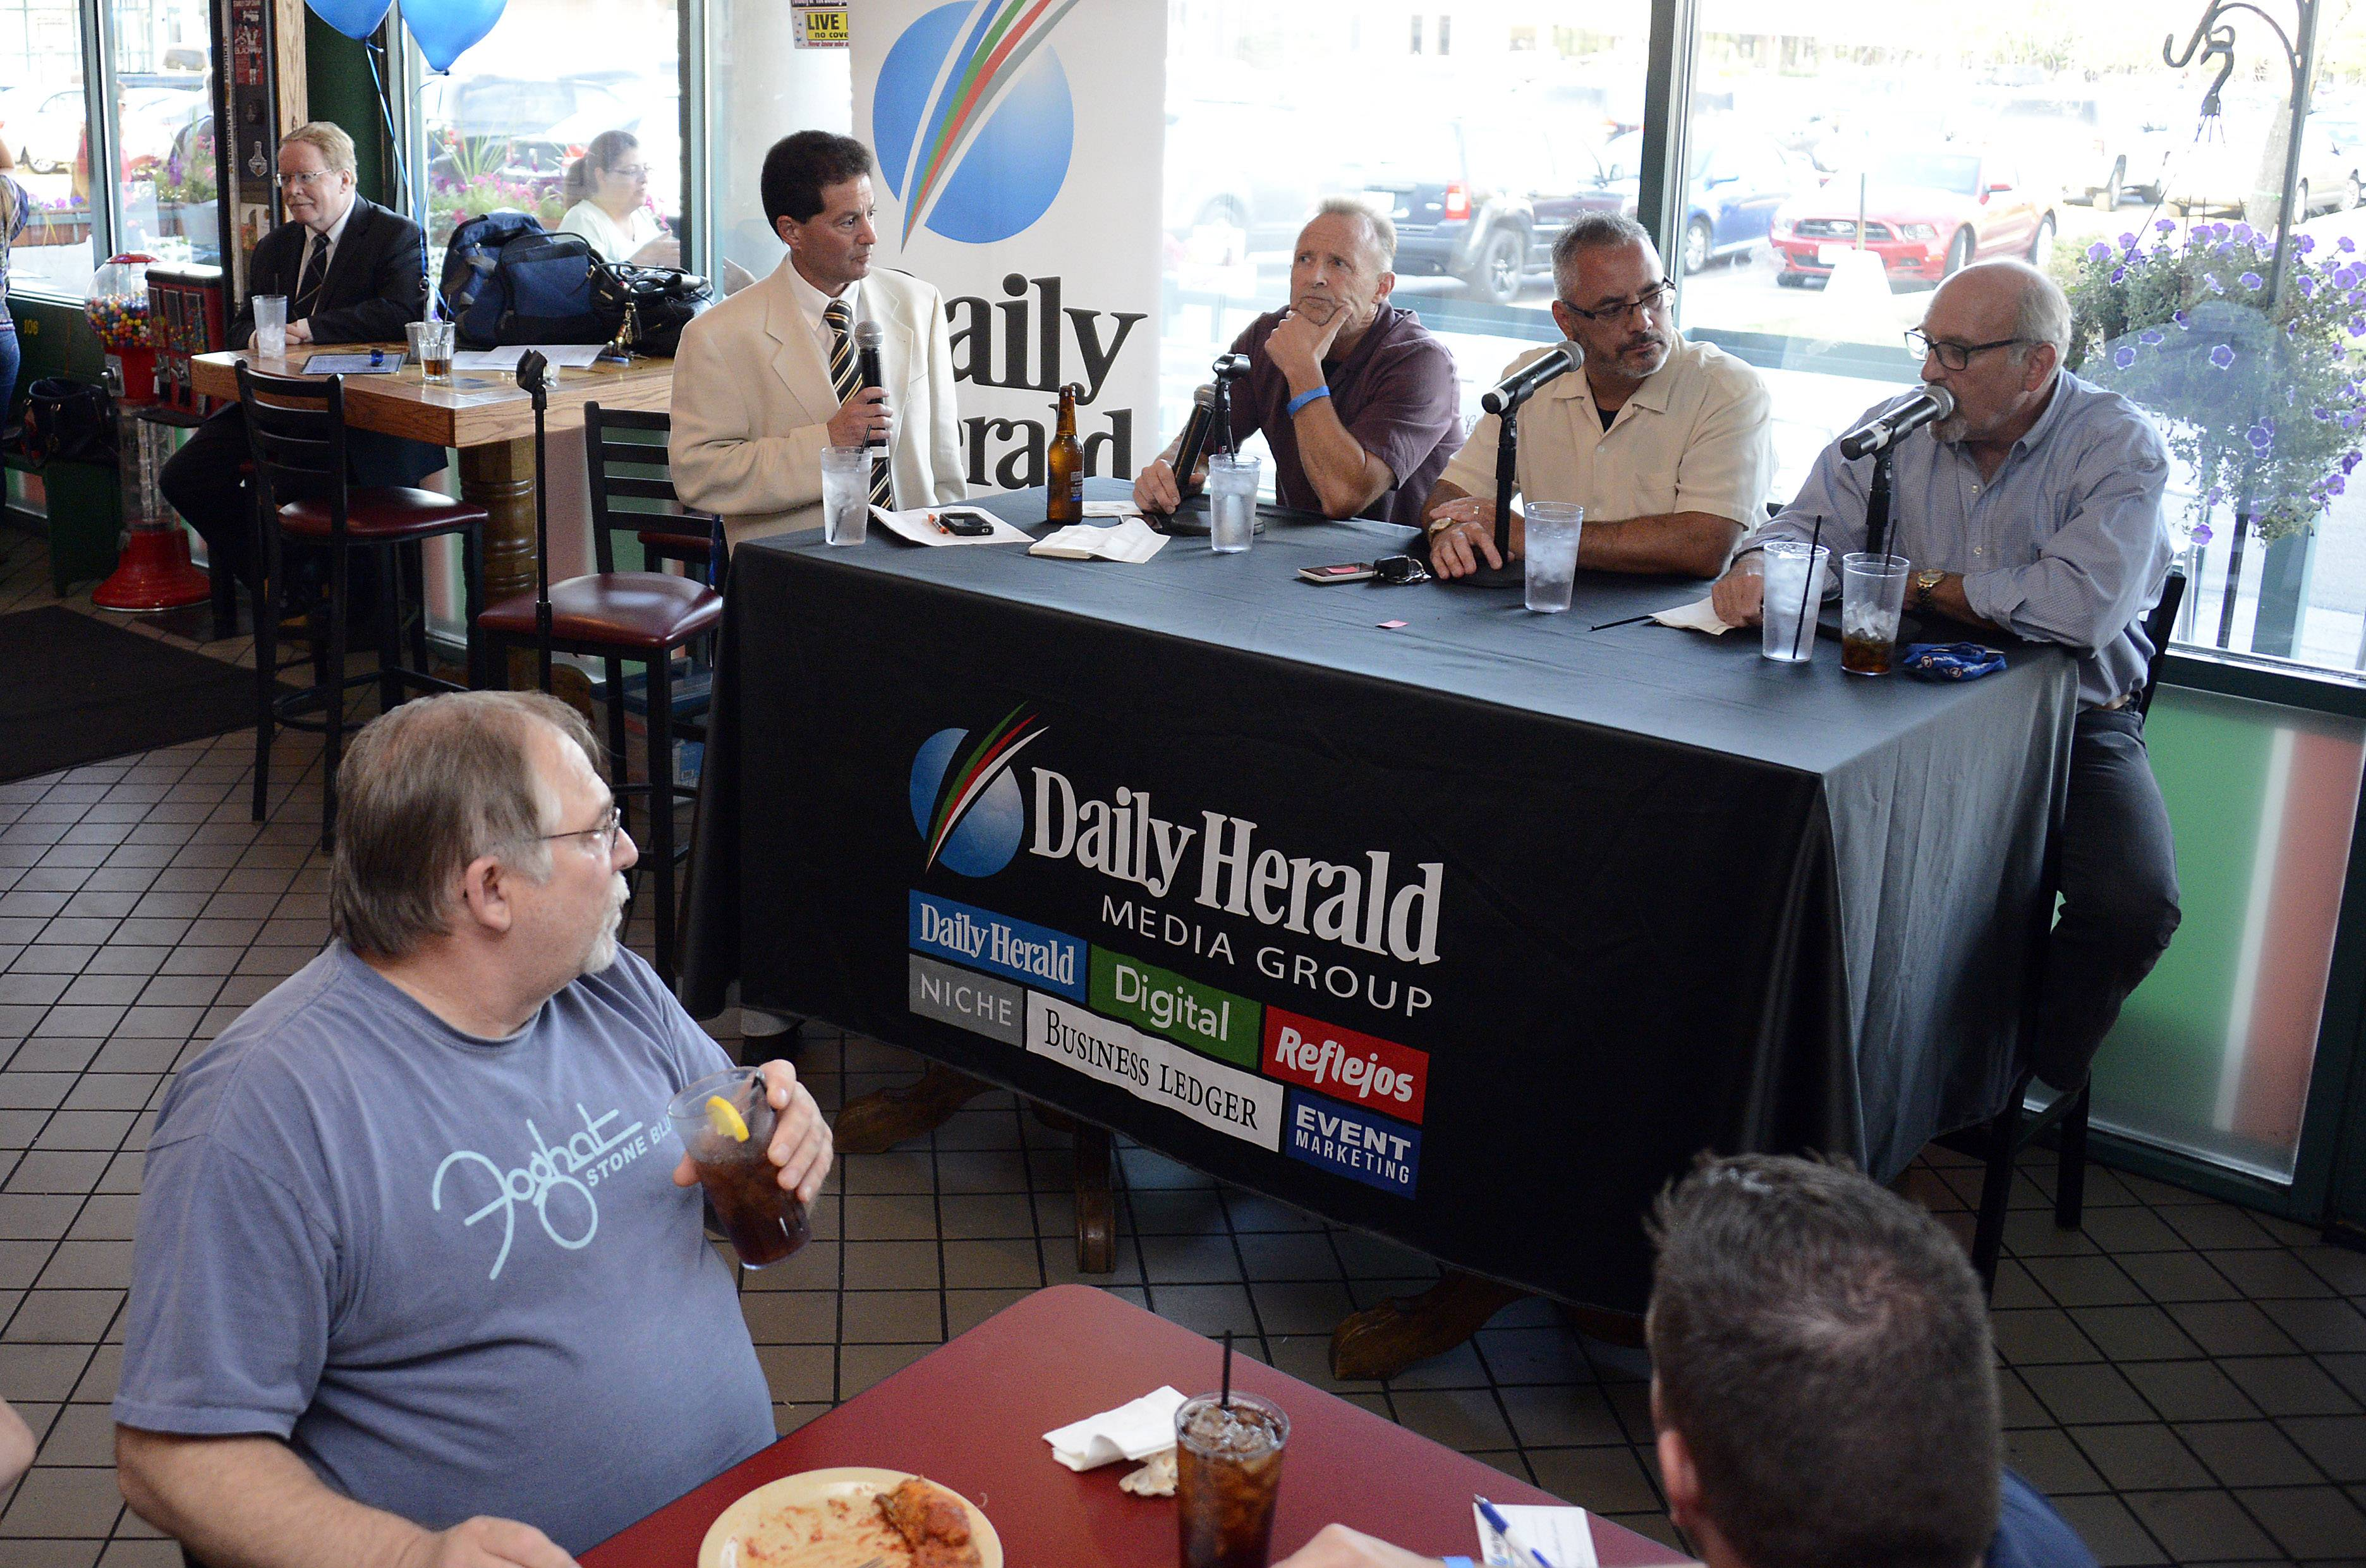 Hub Arkush of Chicago Football Magazine, far right, talks about the Bears' upcoming football season with, from left, sports columnist Barry Rozner, Bears beat writer Bob LeGere and sports writer Joe Aguilar, at a Daily Herald subscriber event Thursday at Coach's Corner in Elk Grove Village.